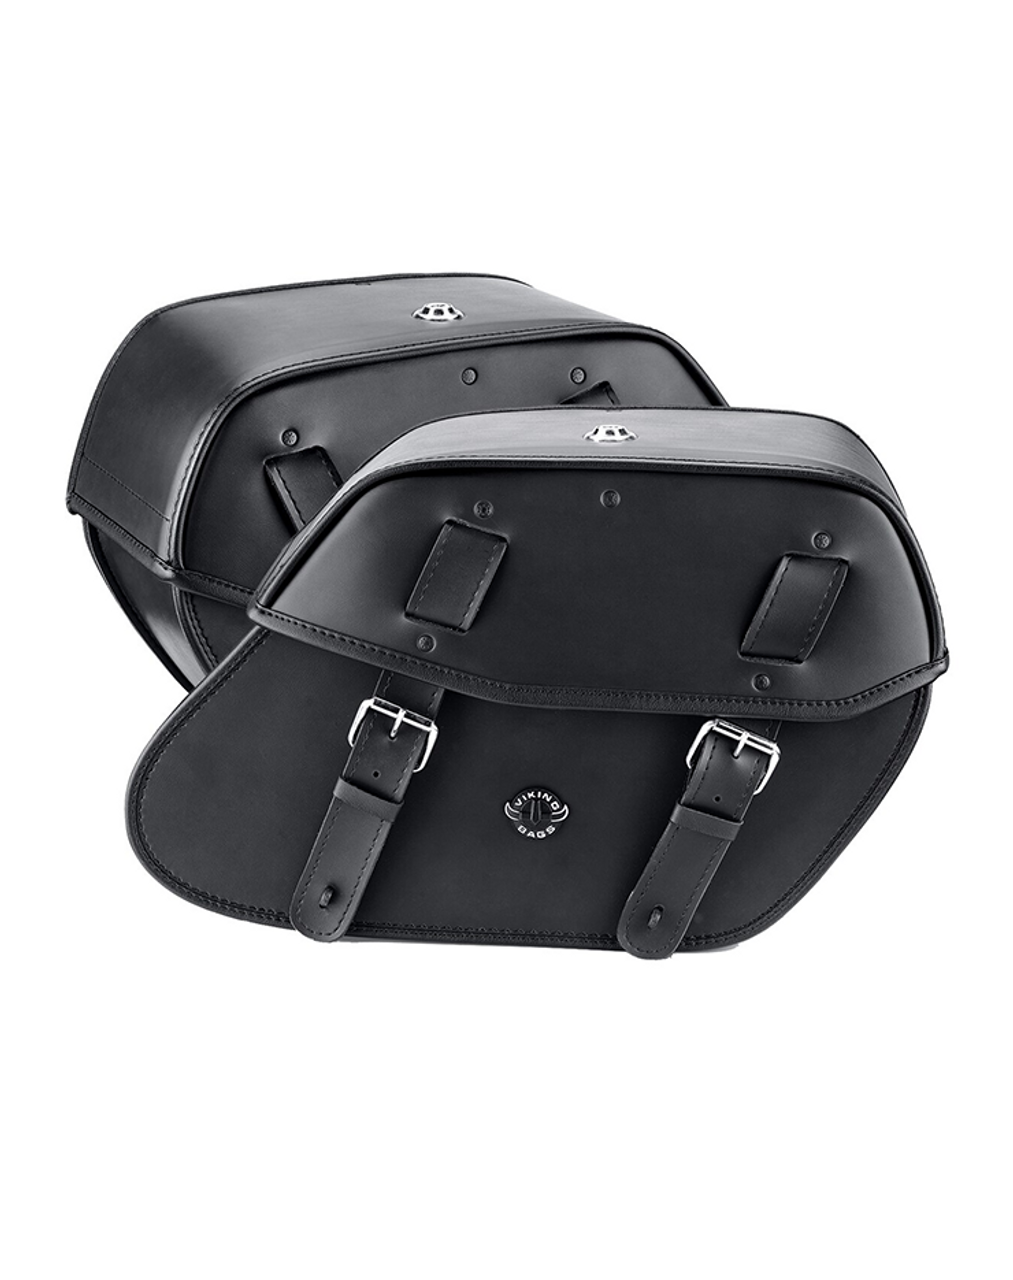 Viking Odin Medium Motorcycle Saddlebags For Harley Softail Springer FXSTS both bags view